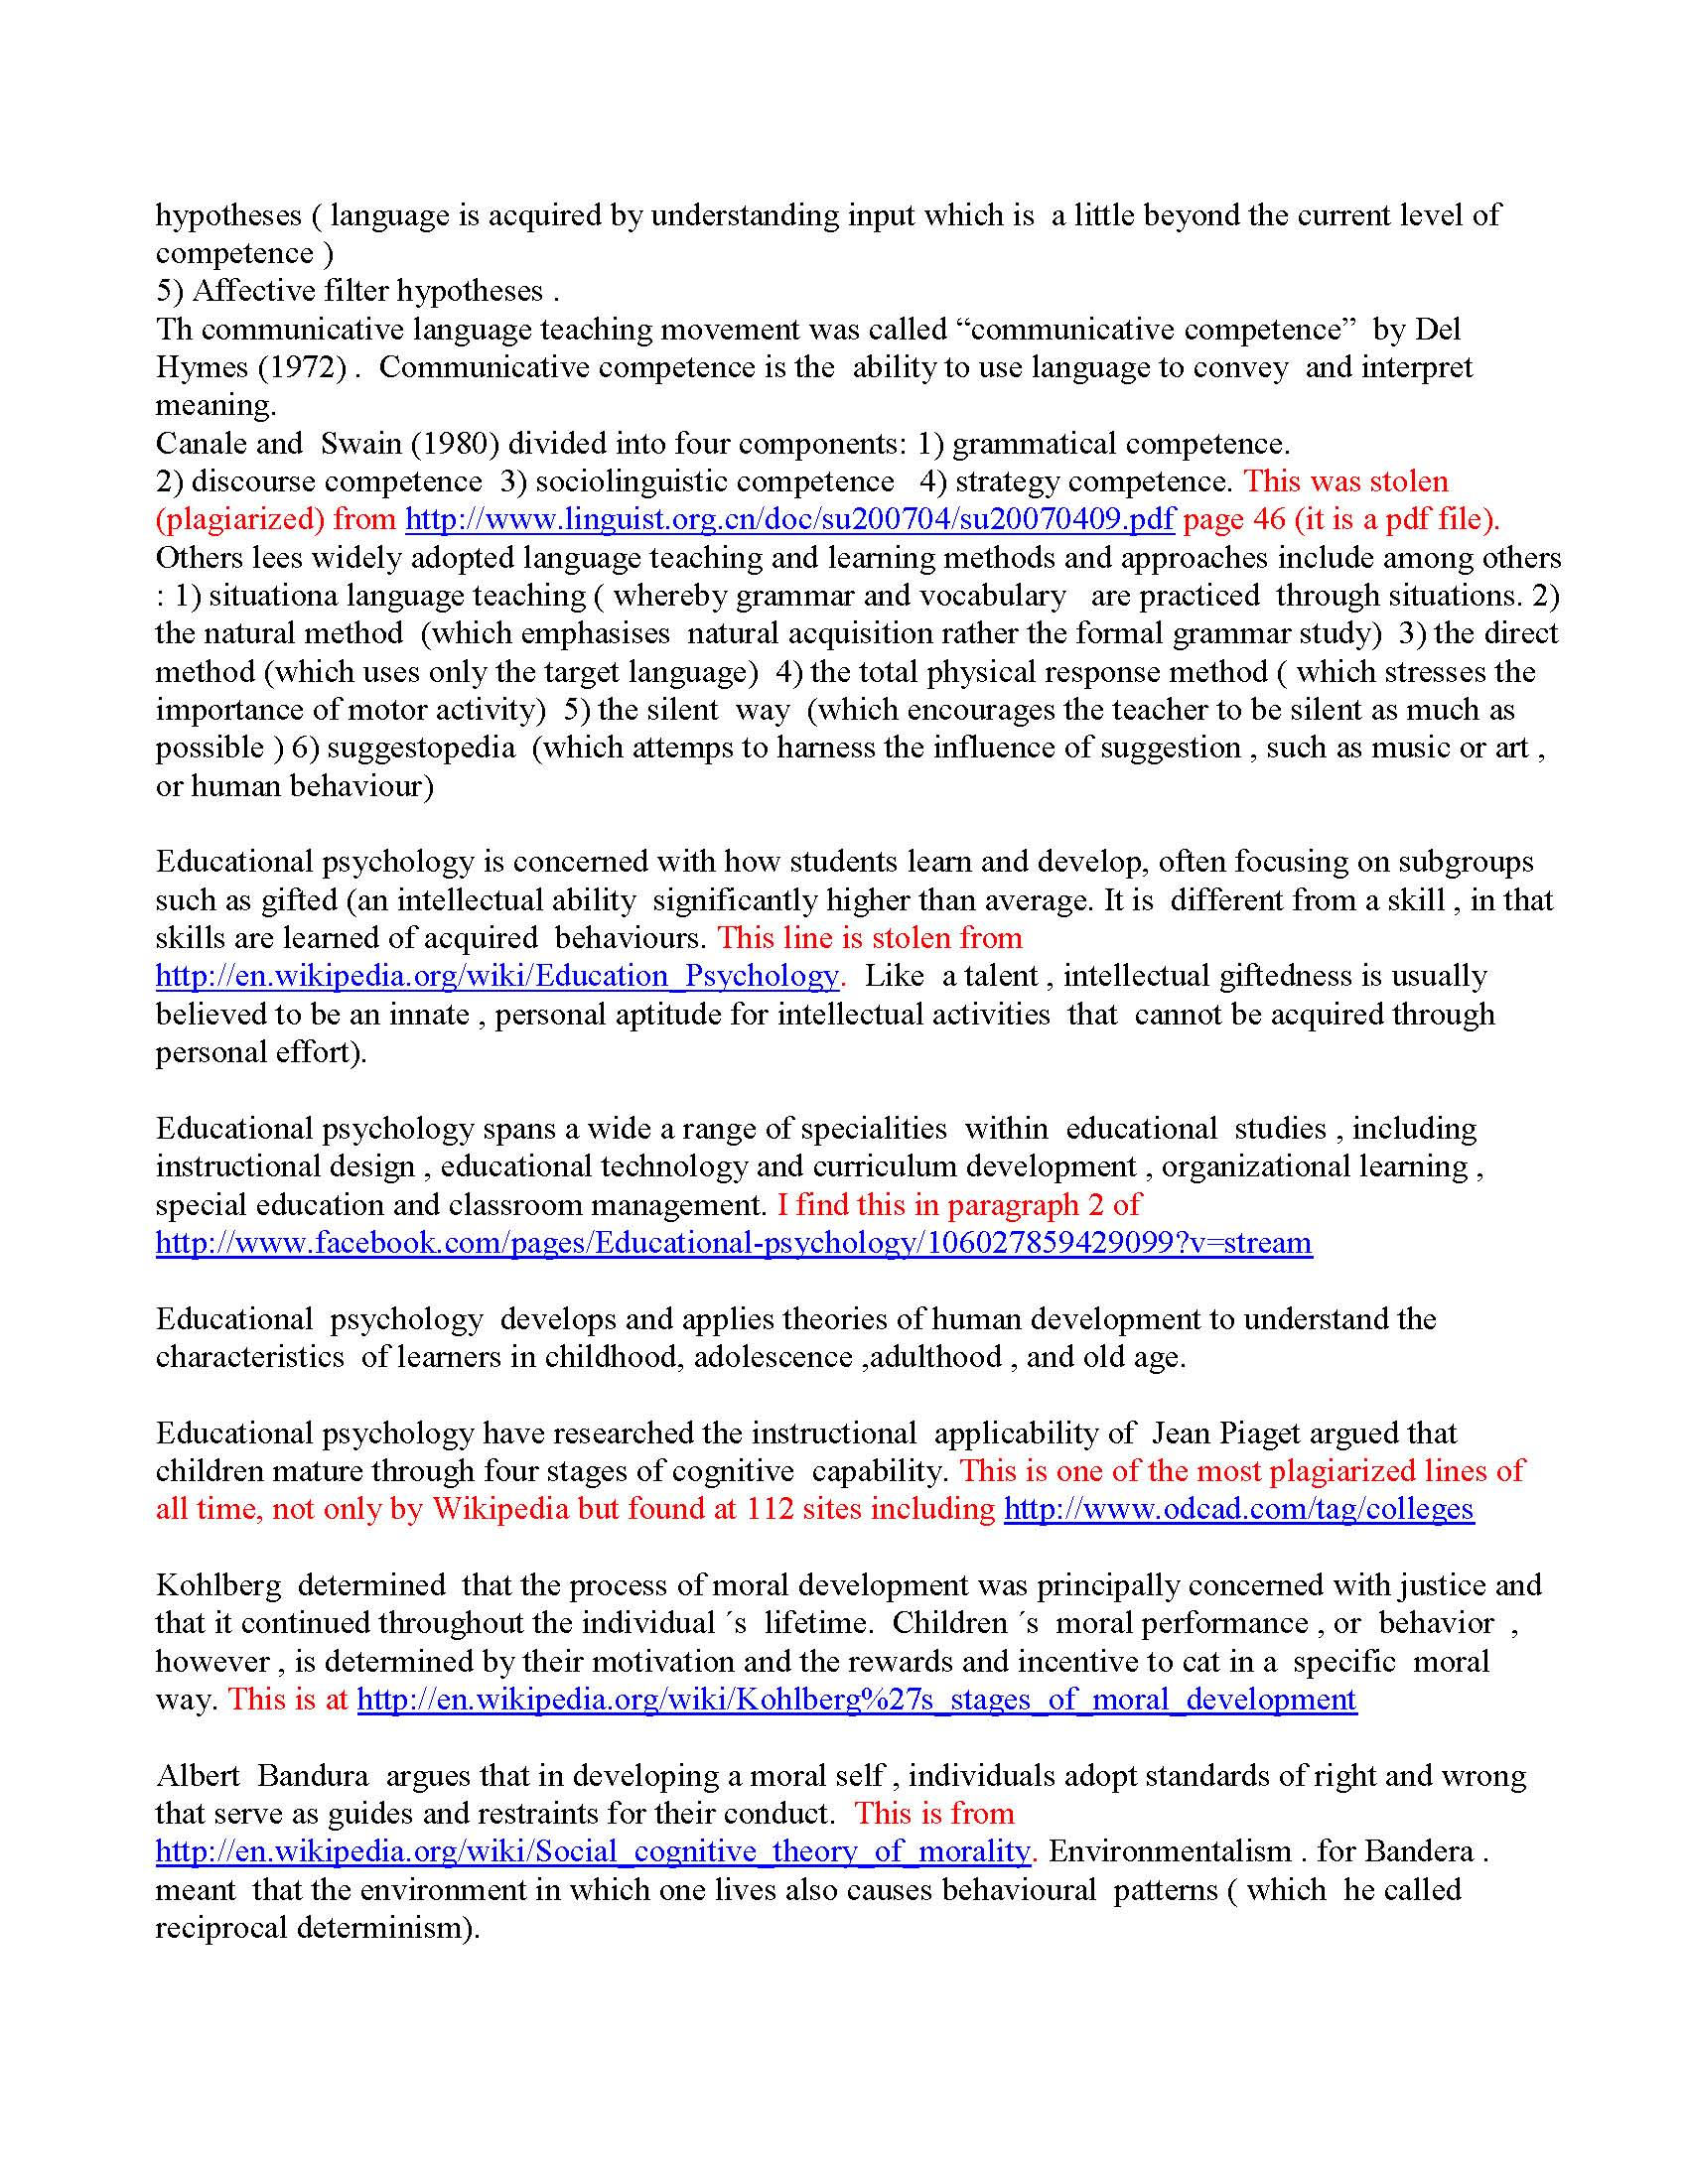 028 Initial Essay Read And Graded Page 2 Checker Shocking College Free Grammatical Punctuation Grammar